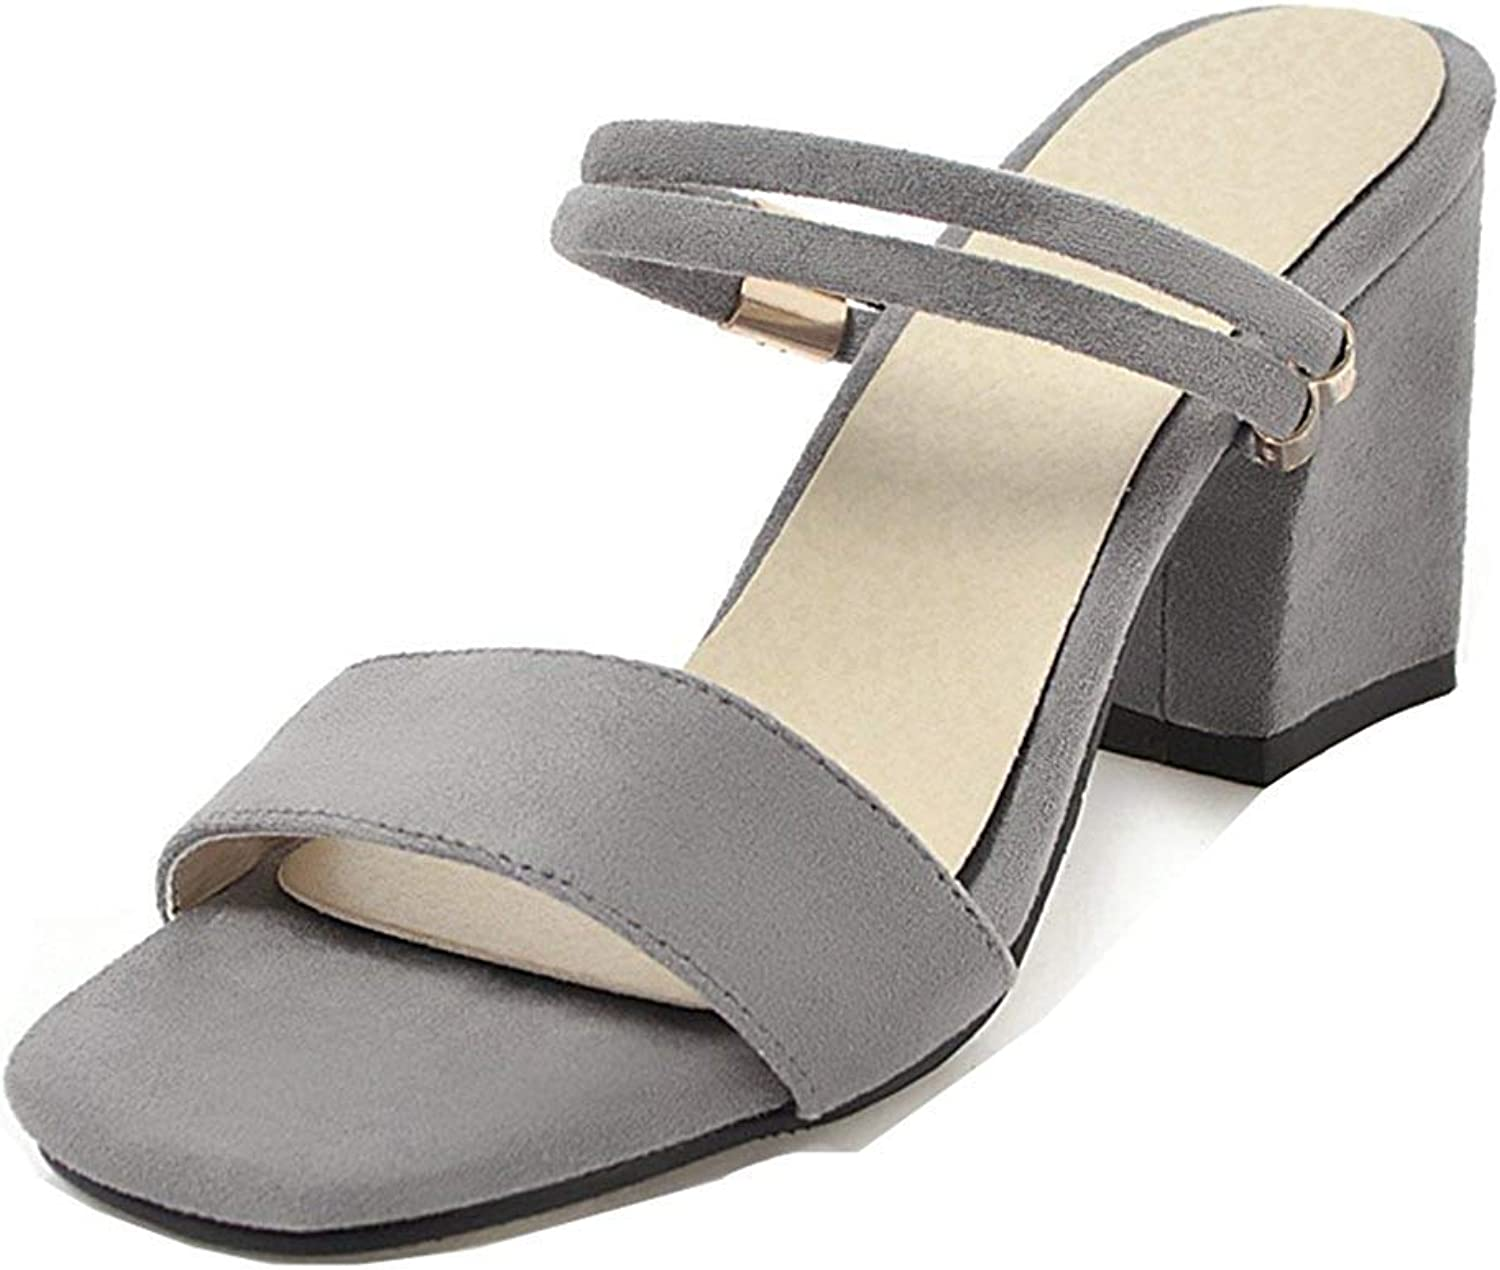 Unm Women's Stacked Slide Sandals - High Heel Open Toe Faux Suede - Elegant Slip on Ankle Strap